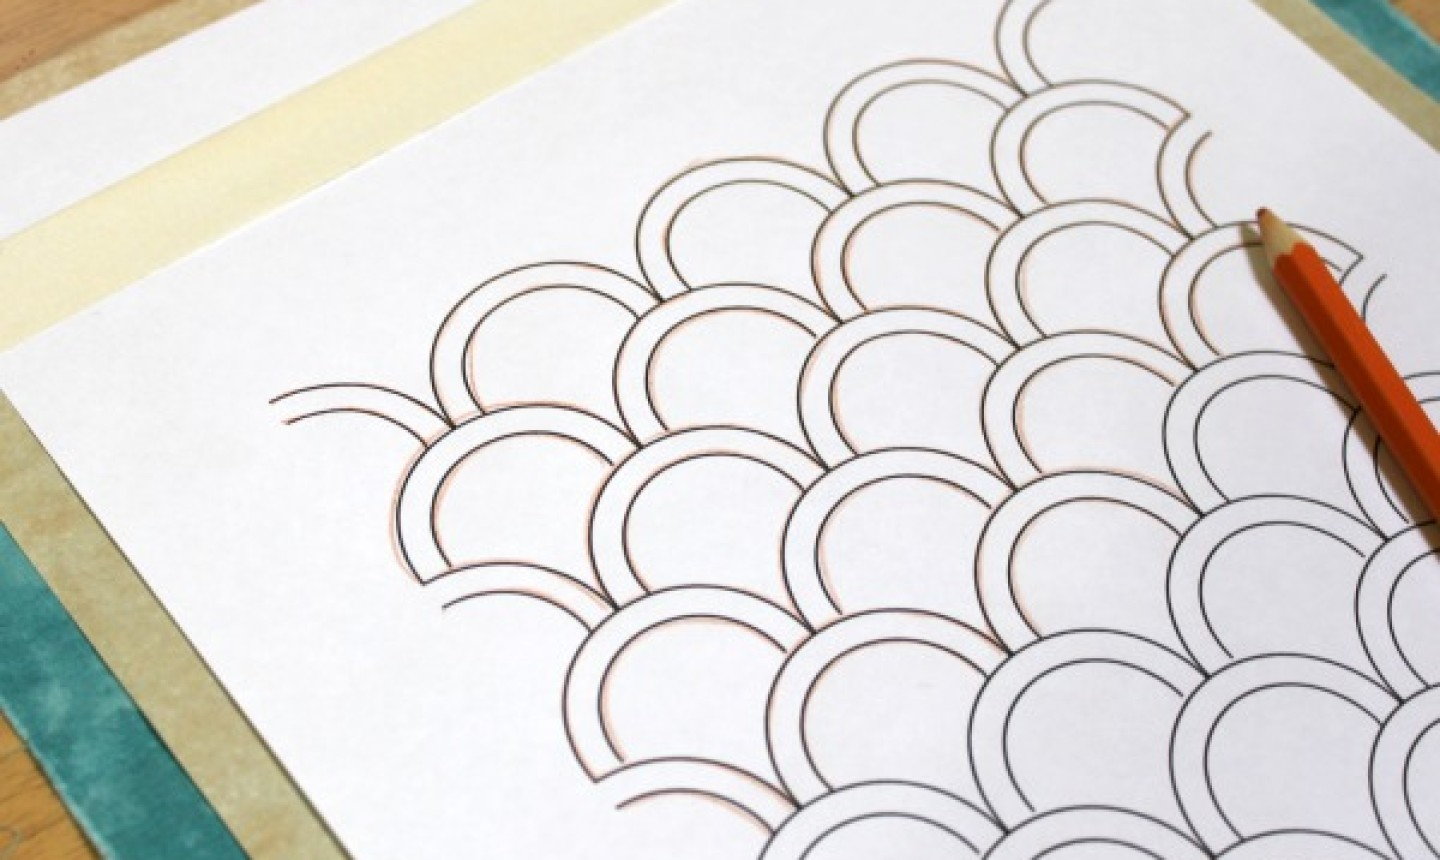 Paper Embroidery Cards Free Patterns Learn Simple Sashiko Embroidery With This Whimsical Cloud Pattern